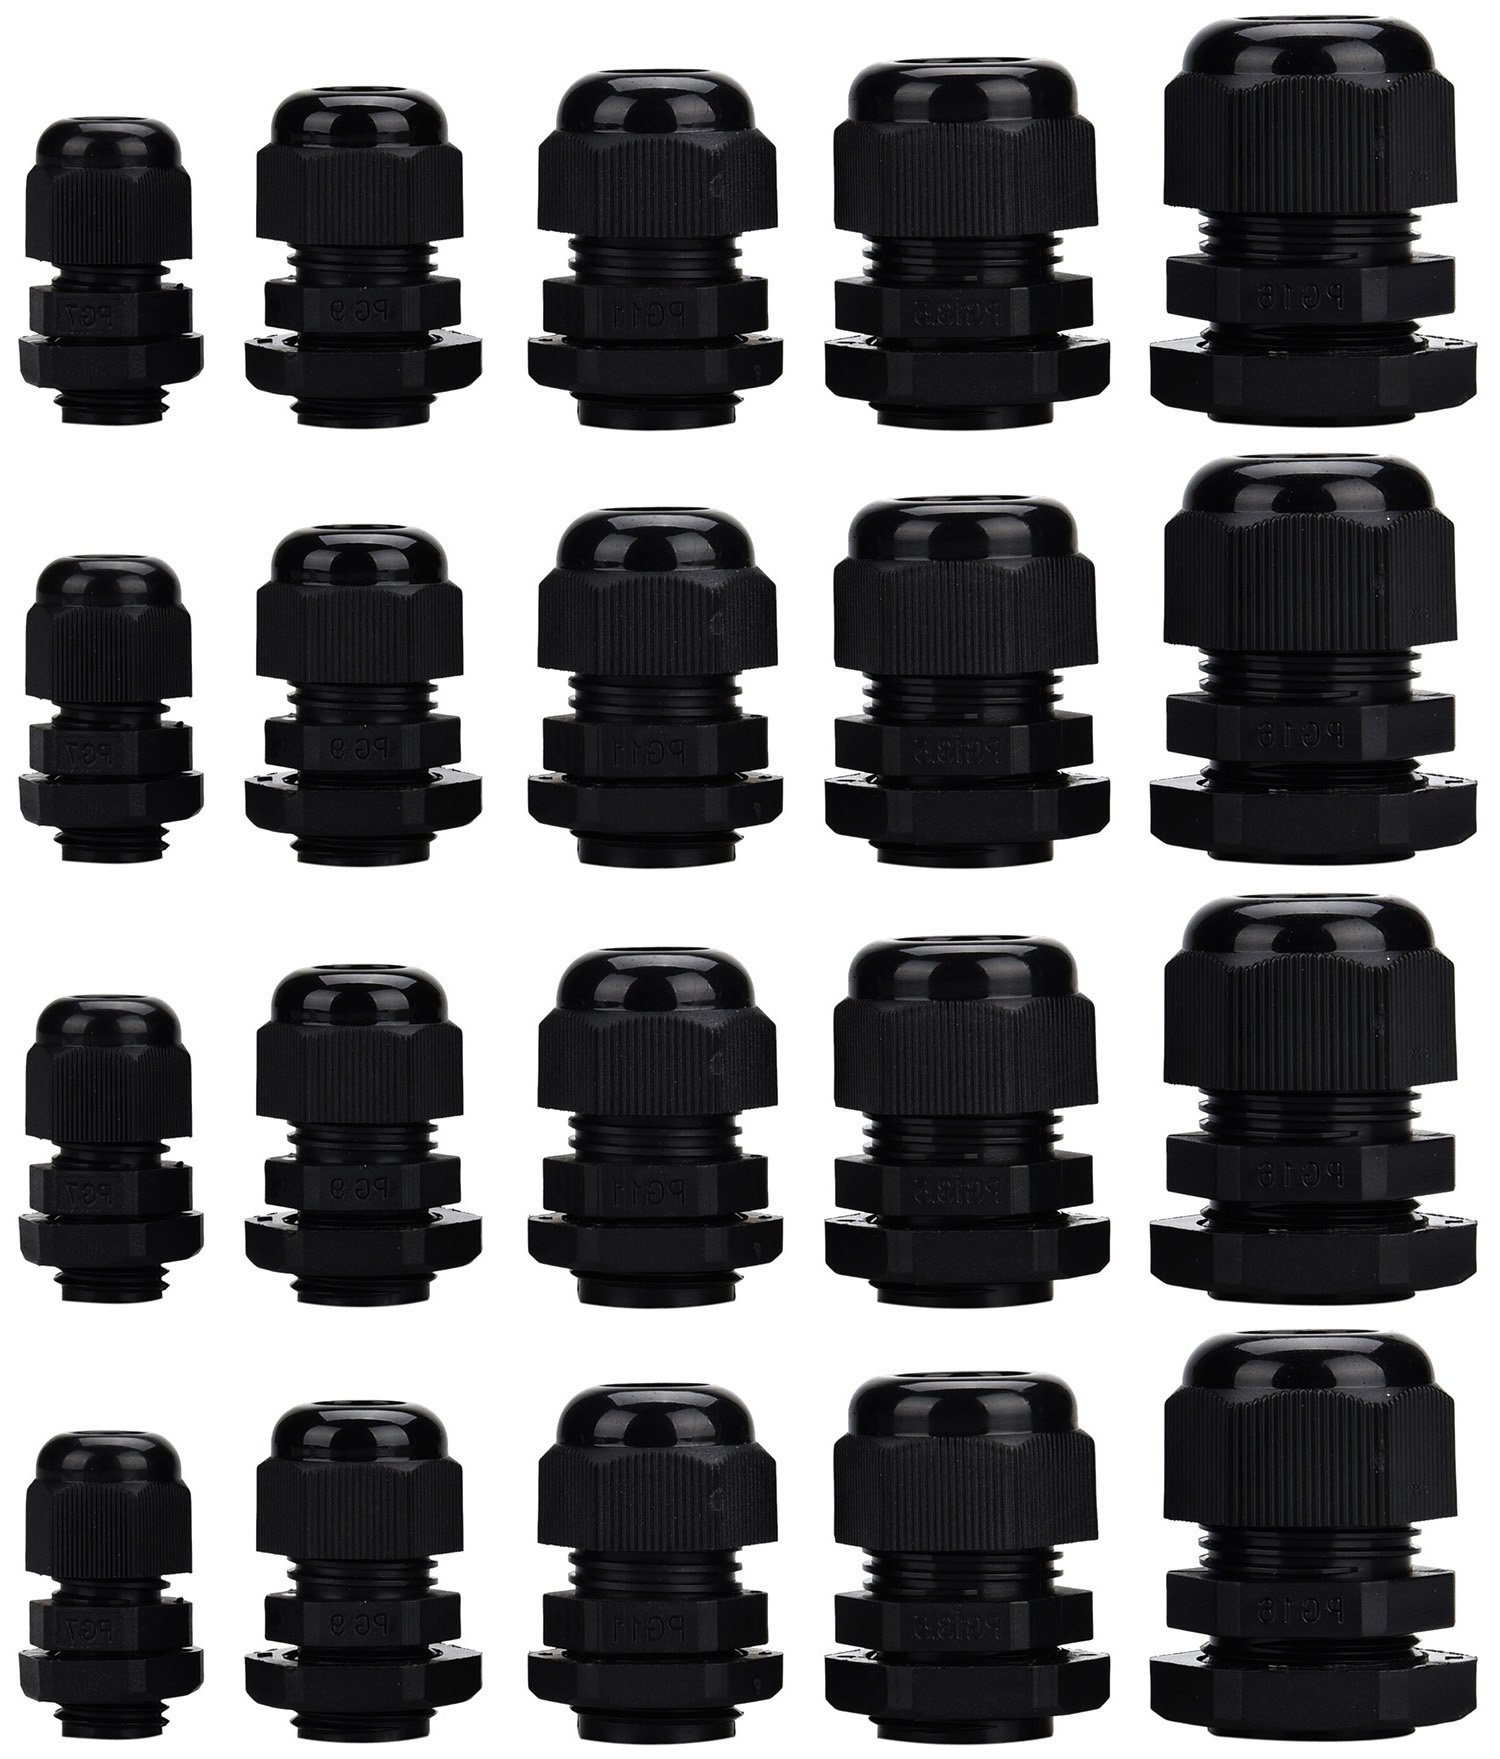 Cable Gland, eLander Plastic Waterproof Adjustable 3.5 - 13mm Cable Gland Joints, PG7, PG9, PG11, PG13.5, PG16, Pack of 20